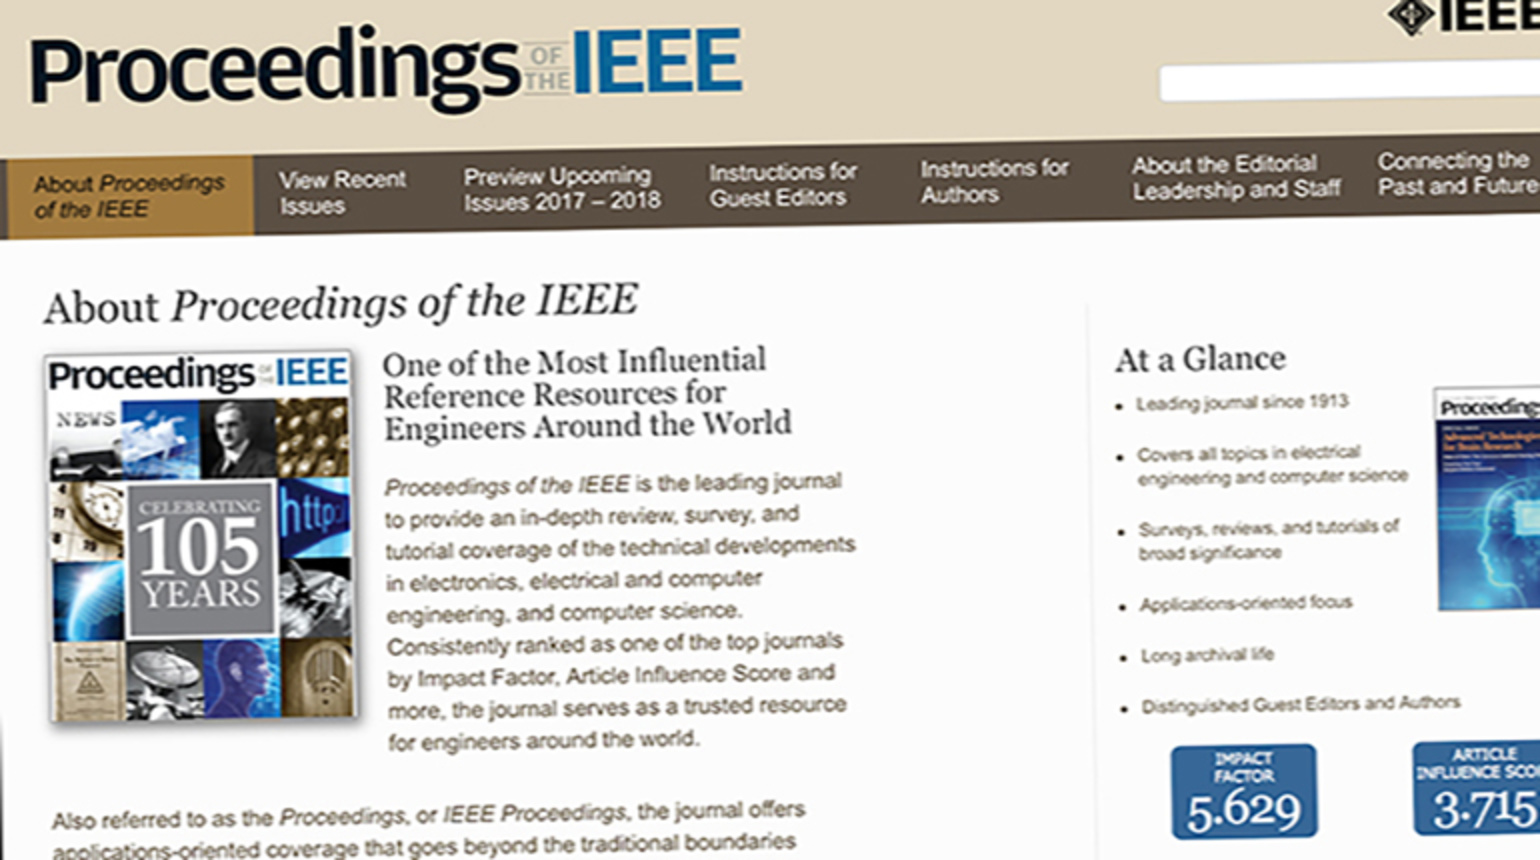 Proceedings of the IEEE: An Overview